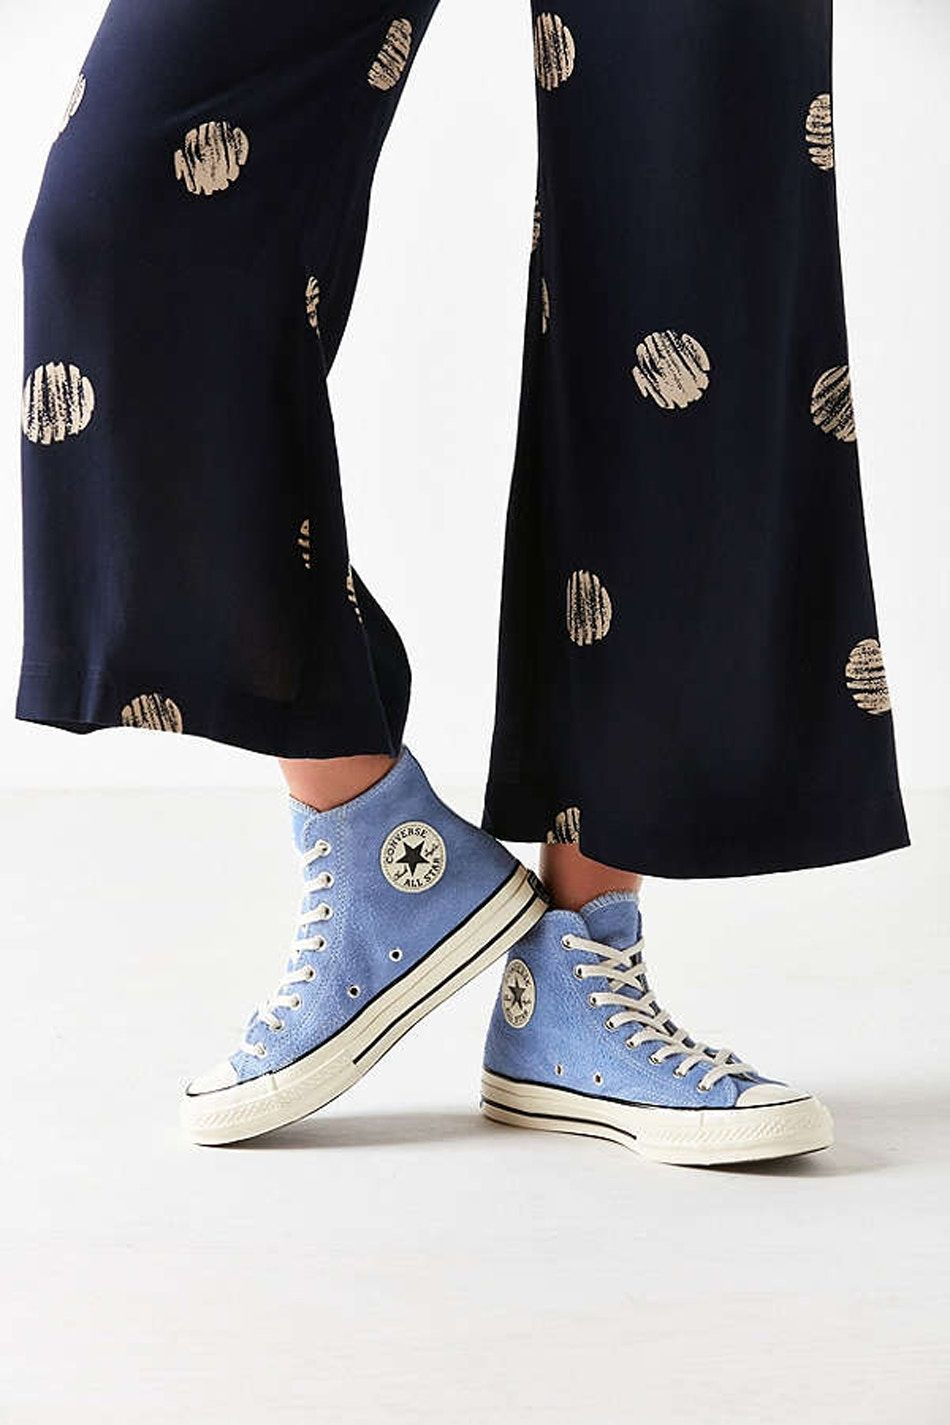 Baby Blue Suede Covers the Converse